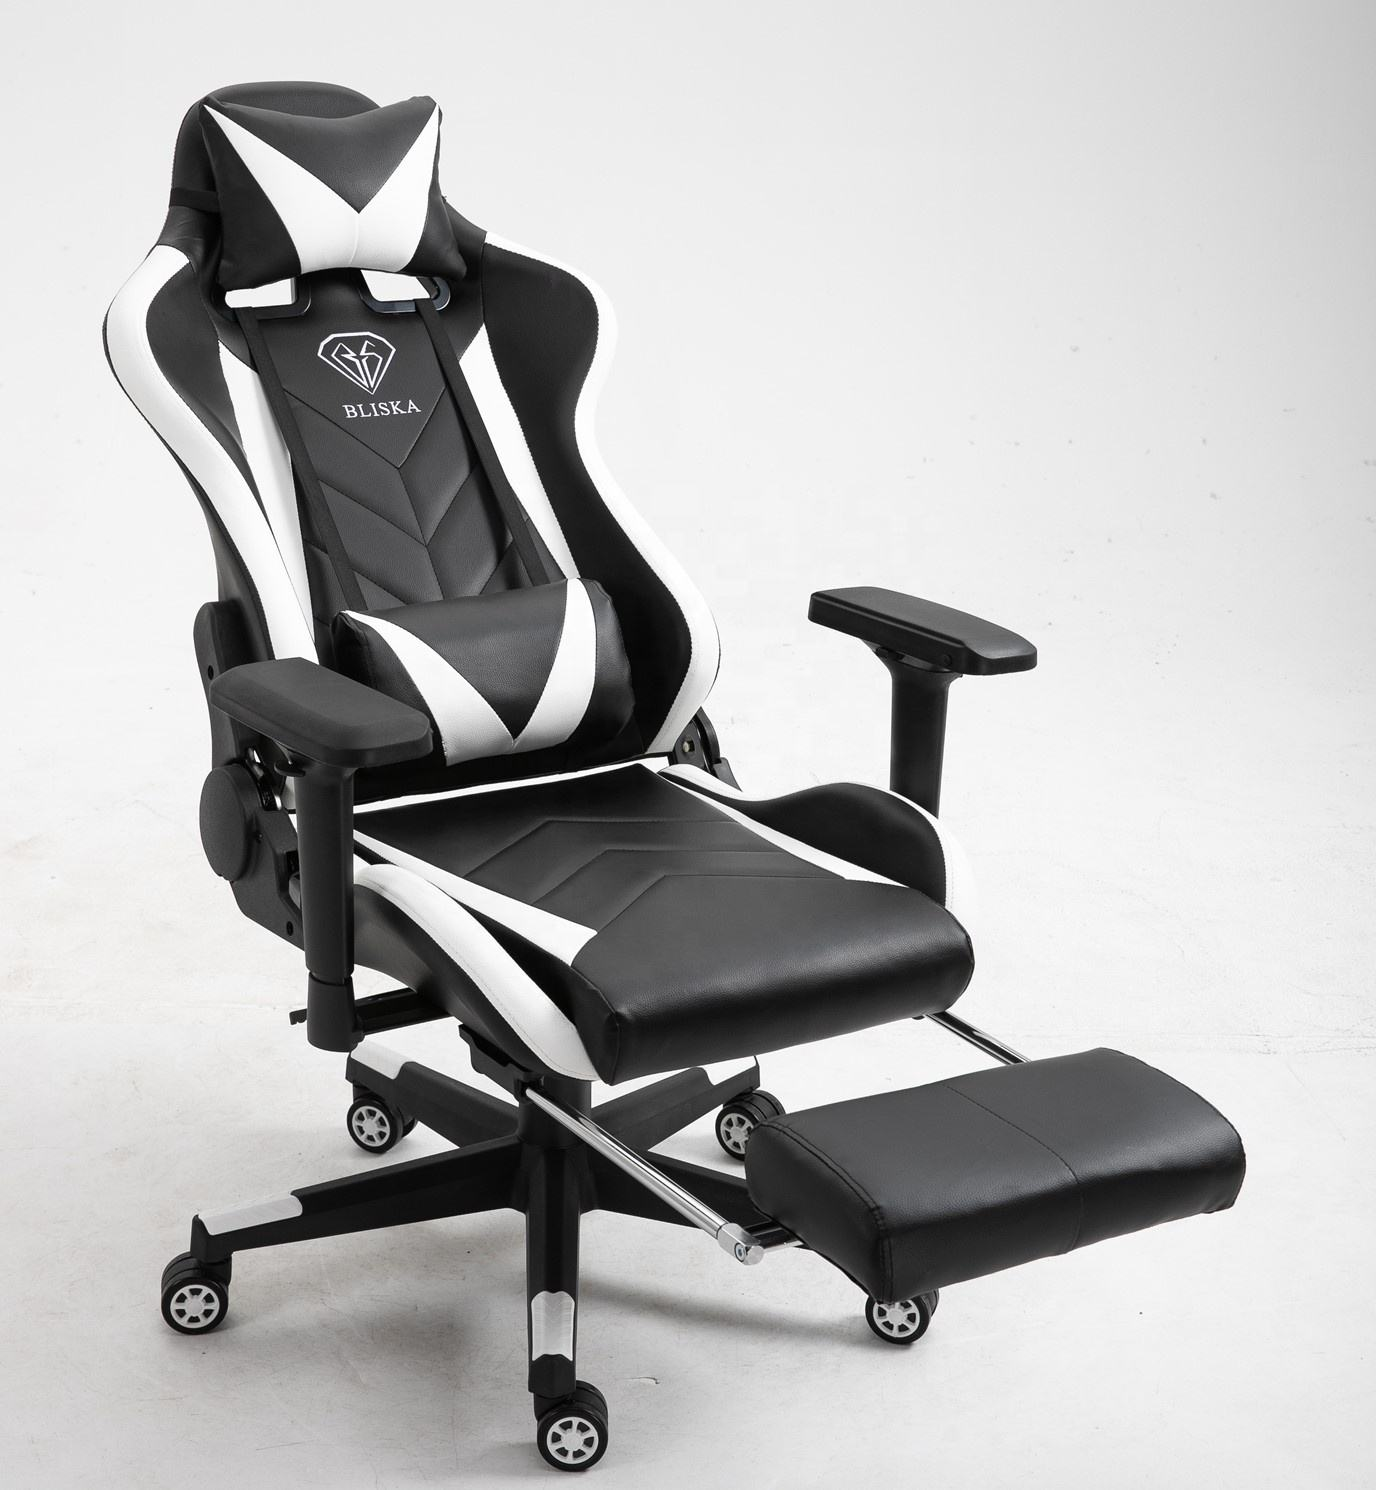 Working Studying and Gaming Racing Chair Reclining Seat Mute 360 Degree Revolving Chair with Footrest